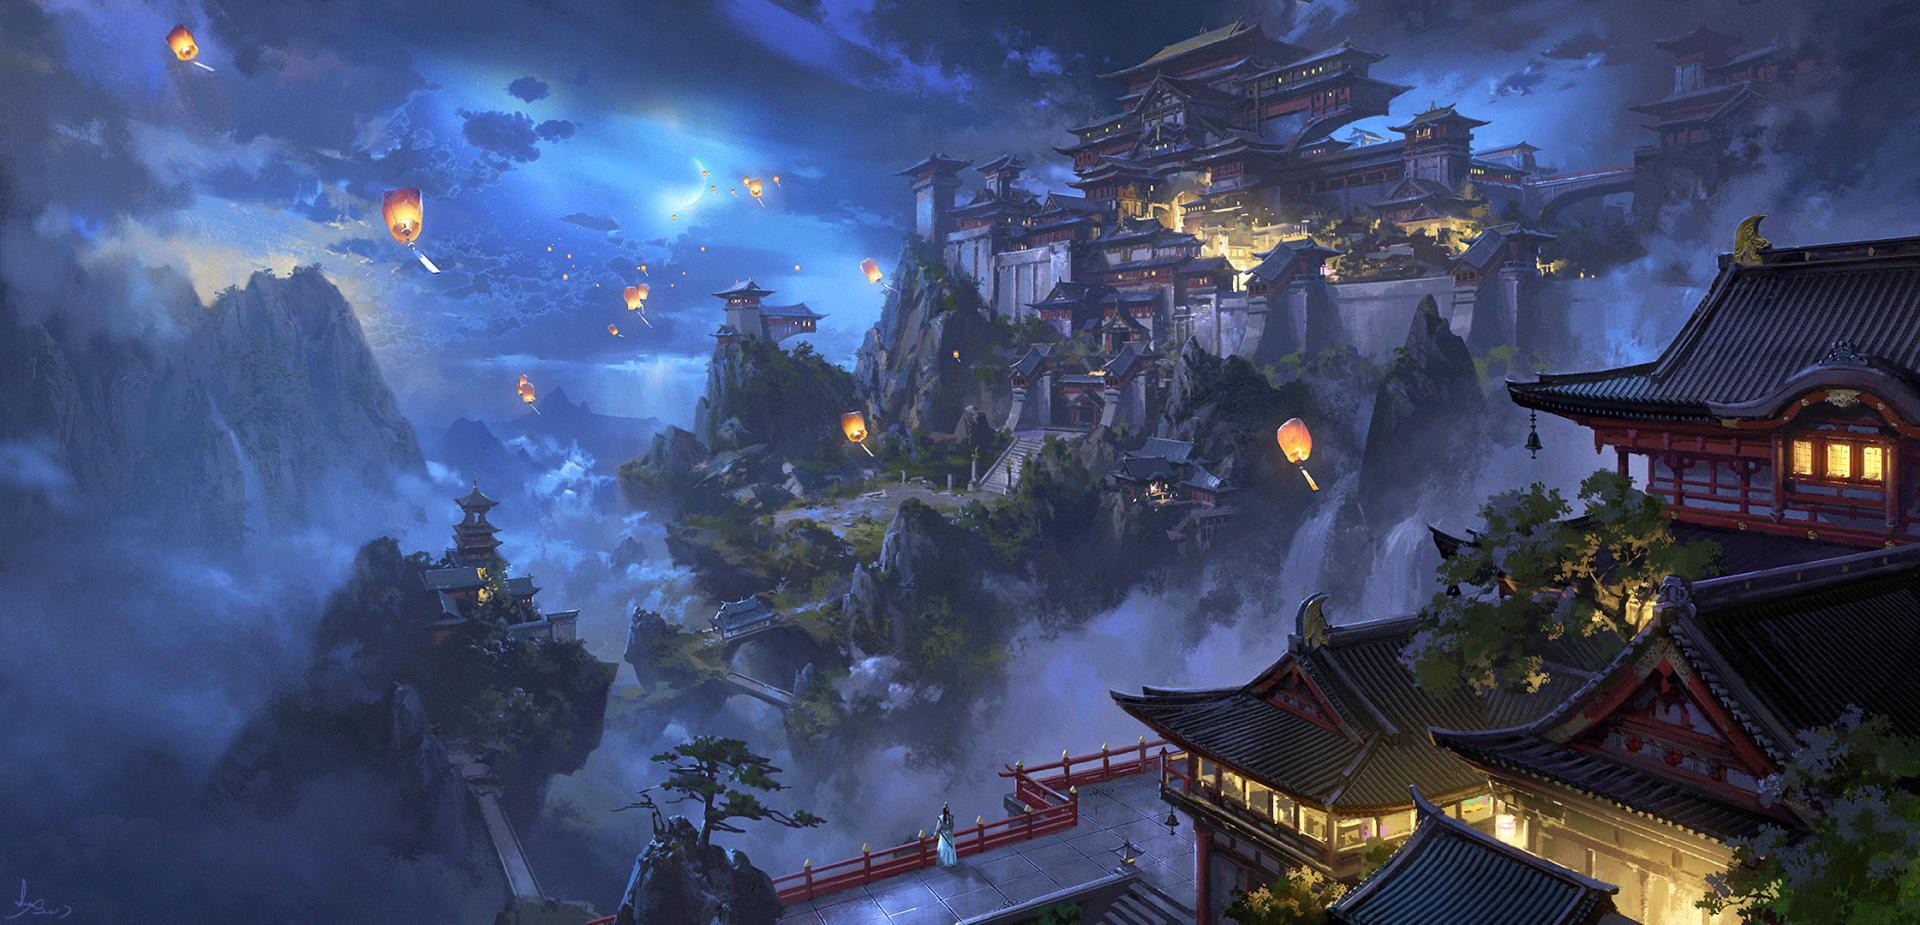 Anime - Original  Night Mountain Building Latern Landscape Wallpaper